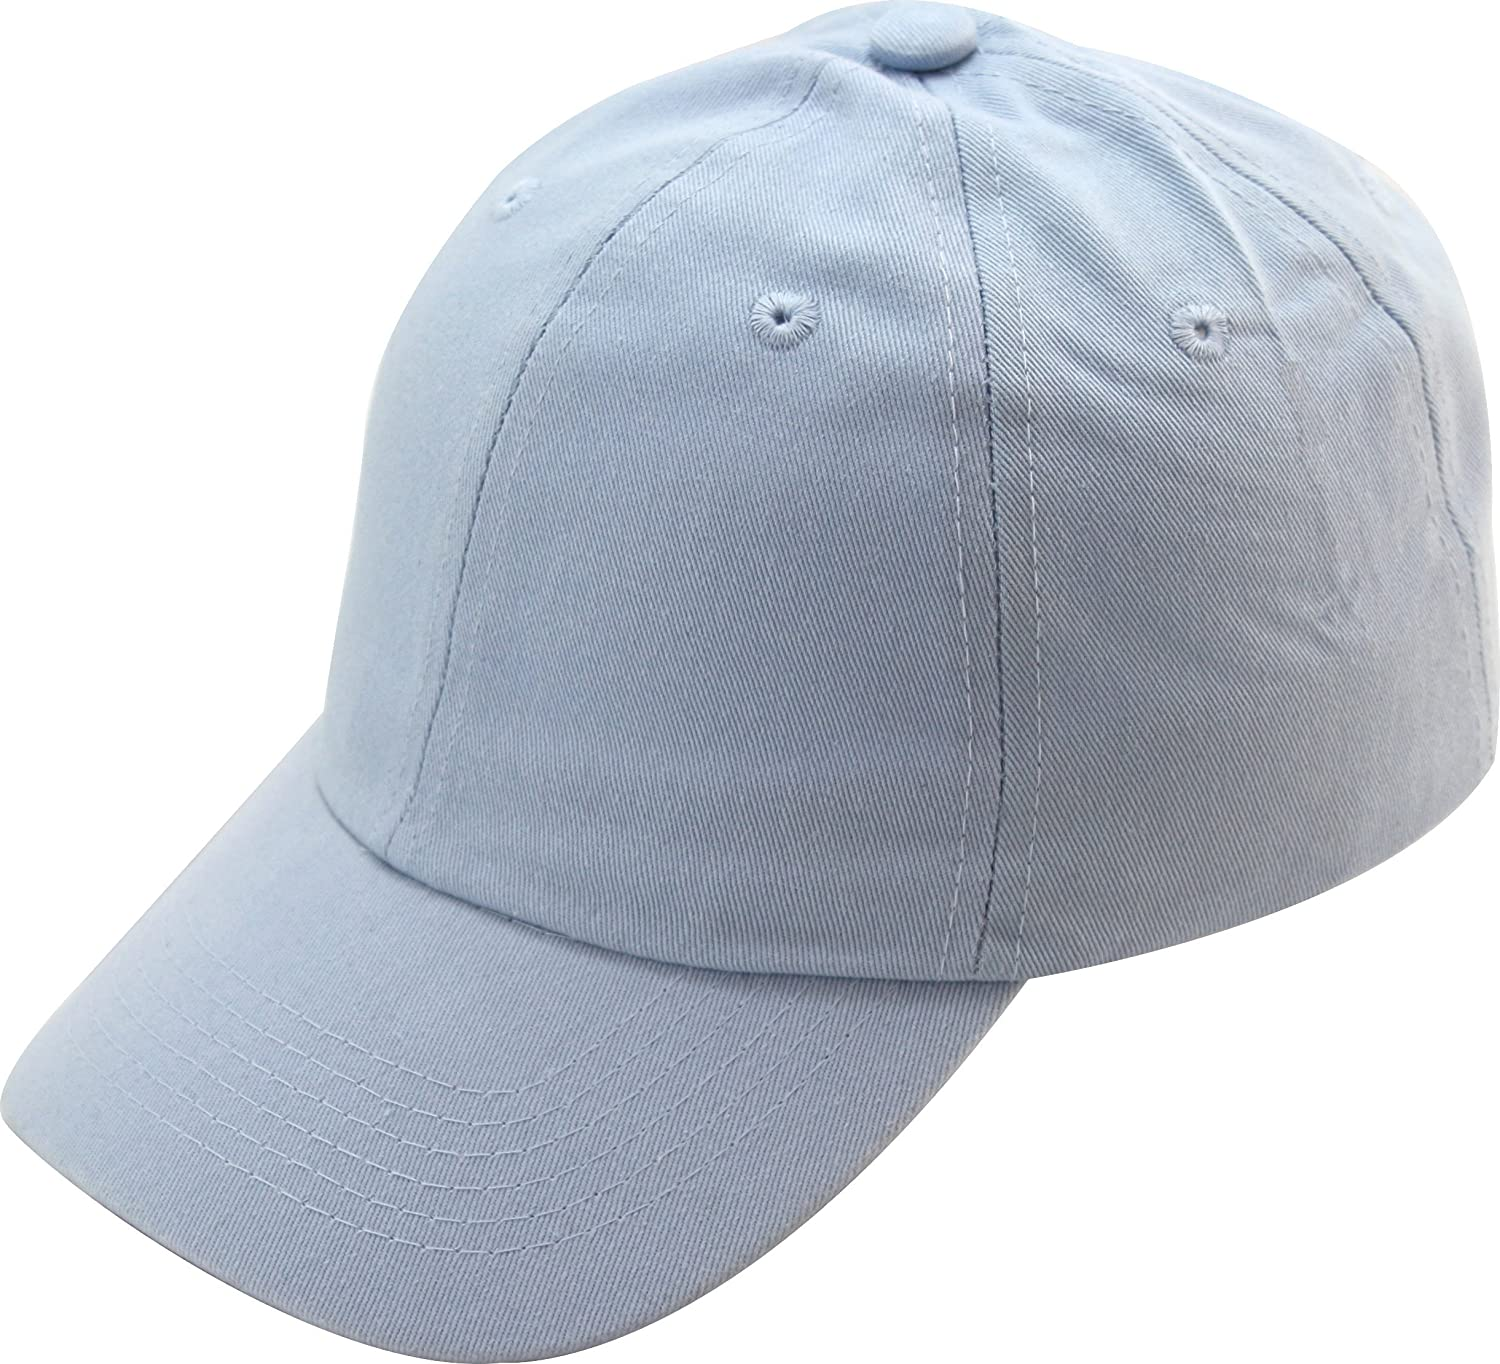 59a3db0cba9 Levine Hat Unisex Stone Washed Cotton Baseball Cap Adjustable Size  (7+  Colors ) ...